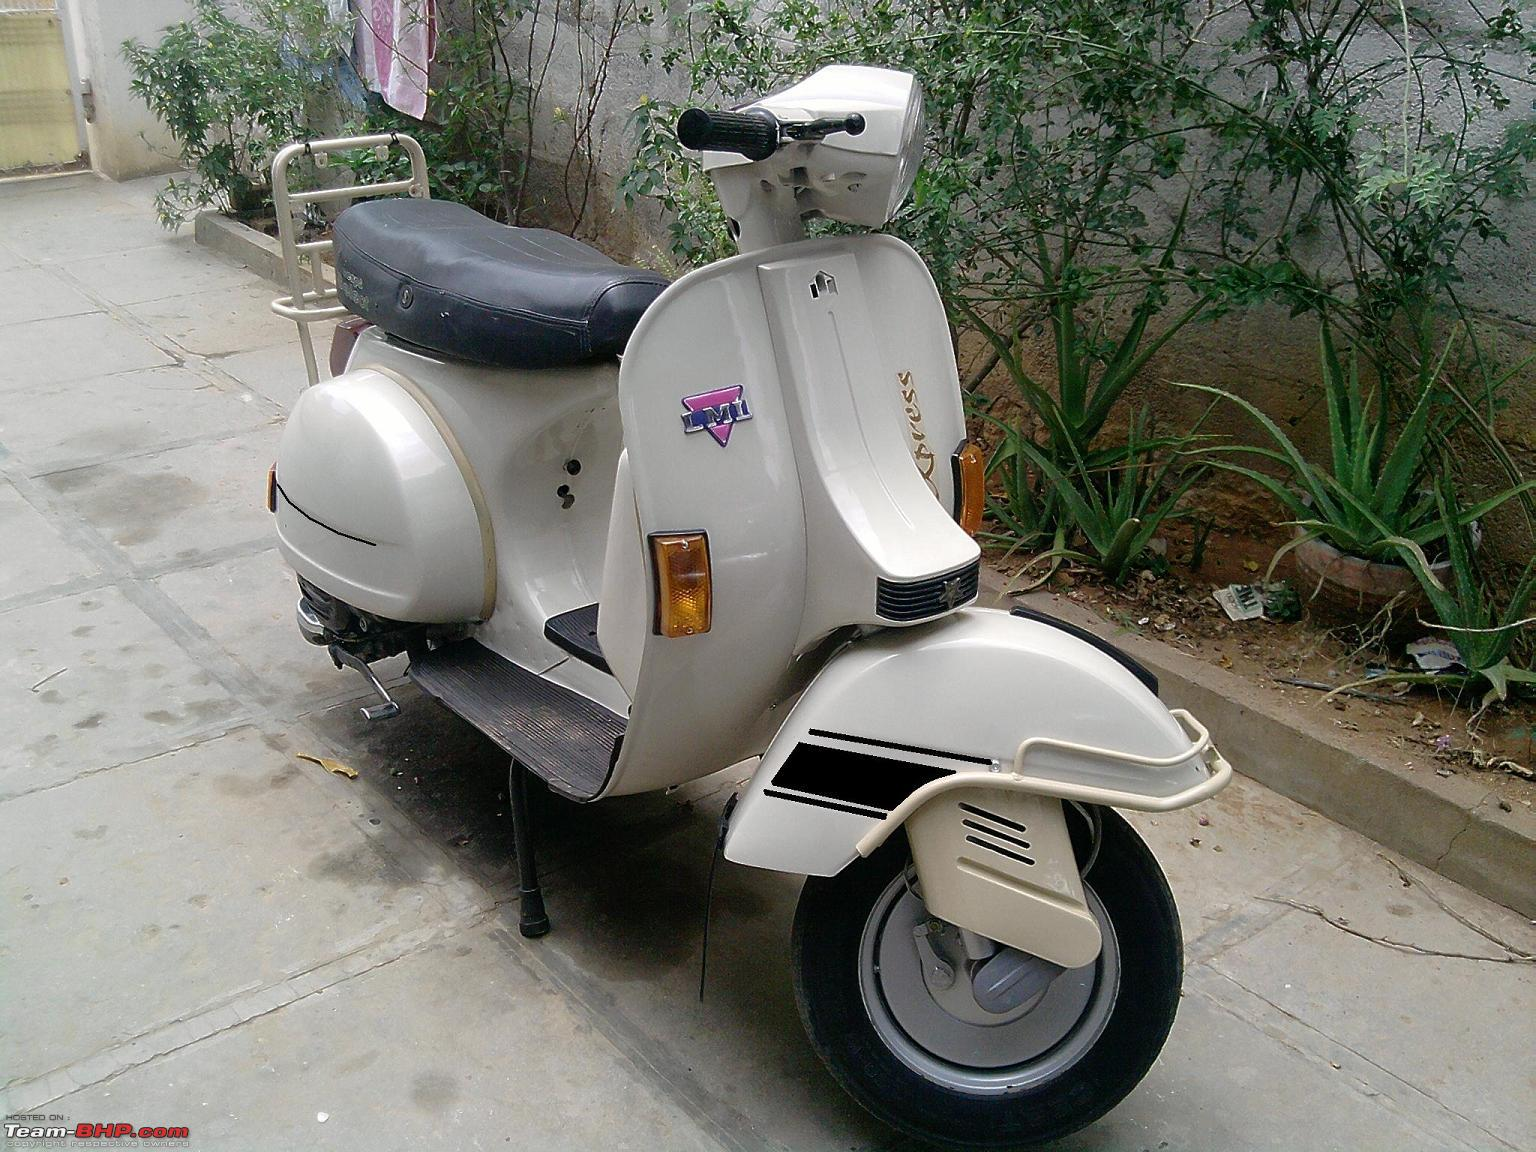 20 FORGOTTEN scooters of India: From Kinetic Honda to Royal Enfield